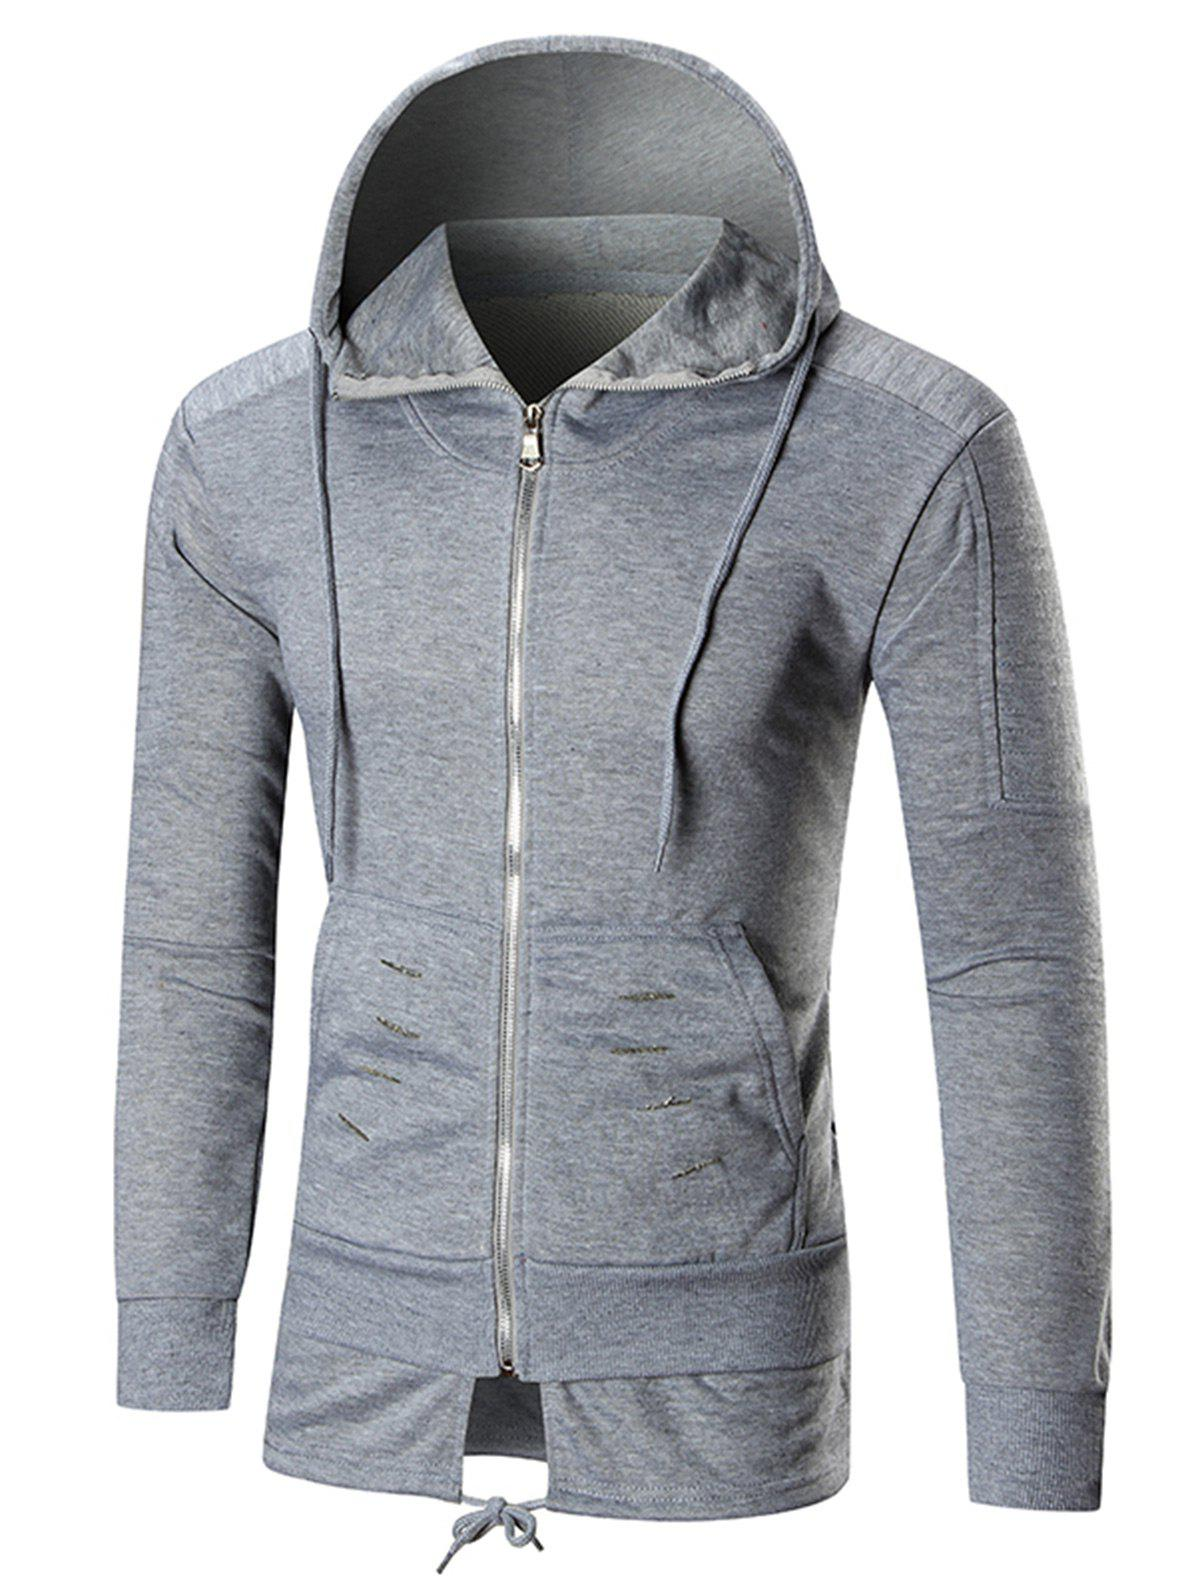 Drawstring Hem Zip Front Distressed Hoodie - GRAY 2XL